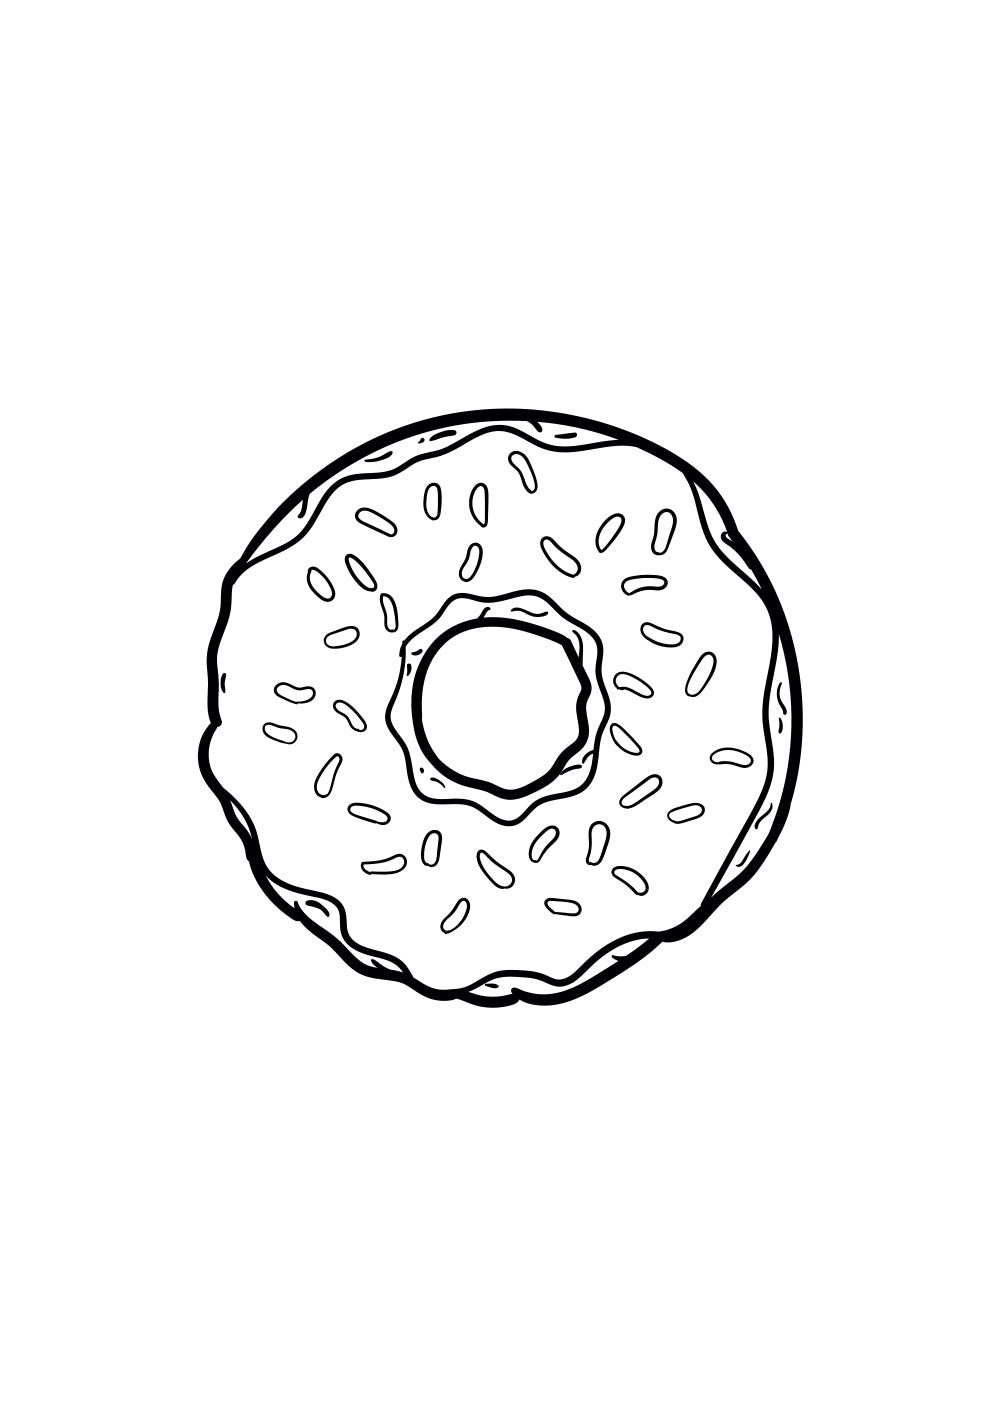 Dessin au trait noir du donut authentique de la série Simpson.